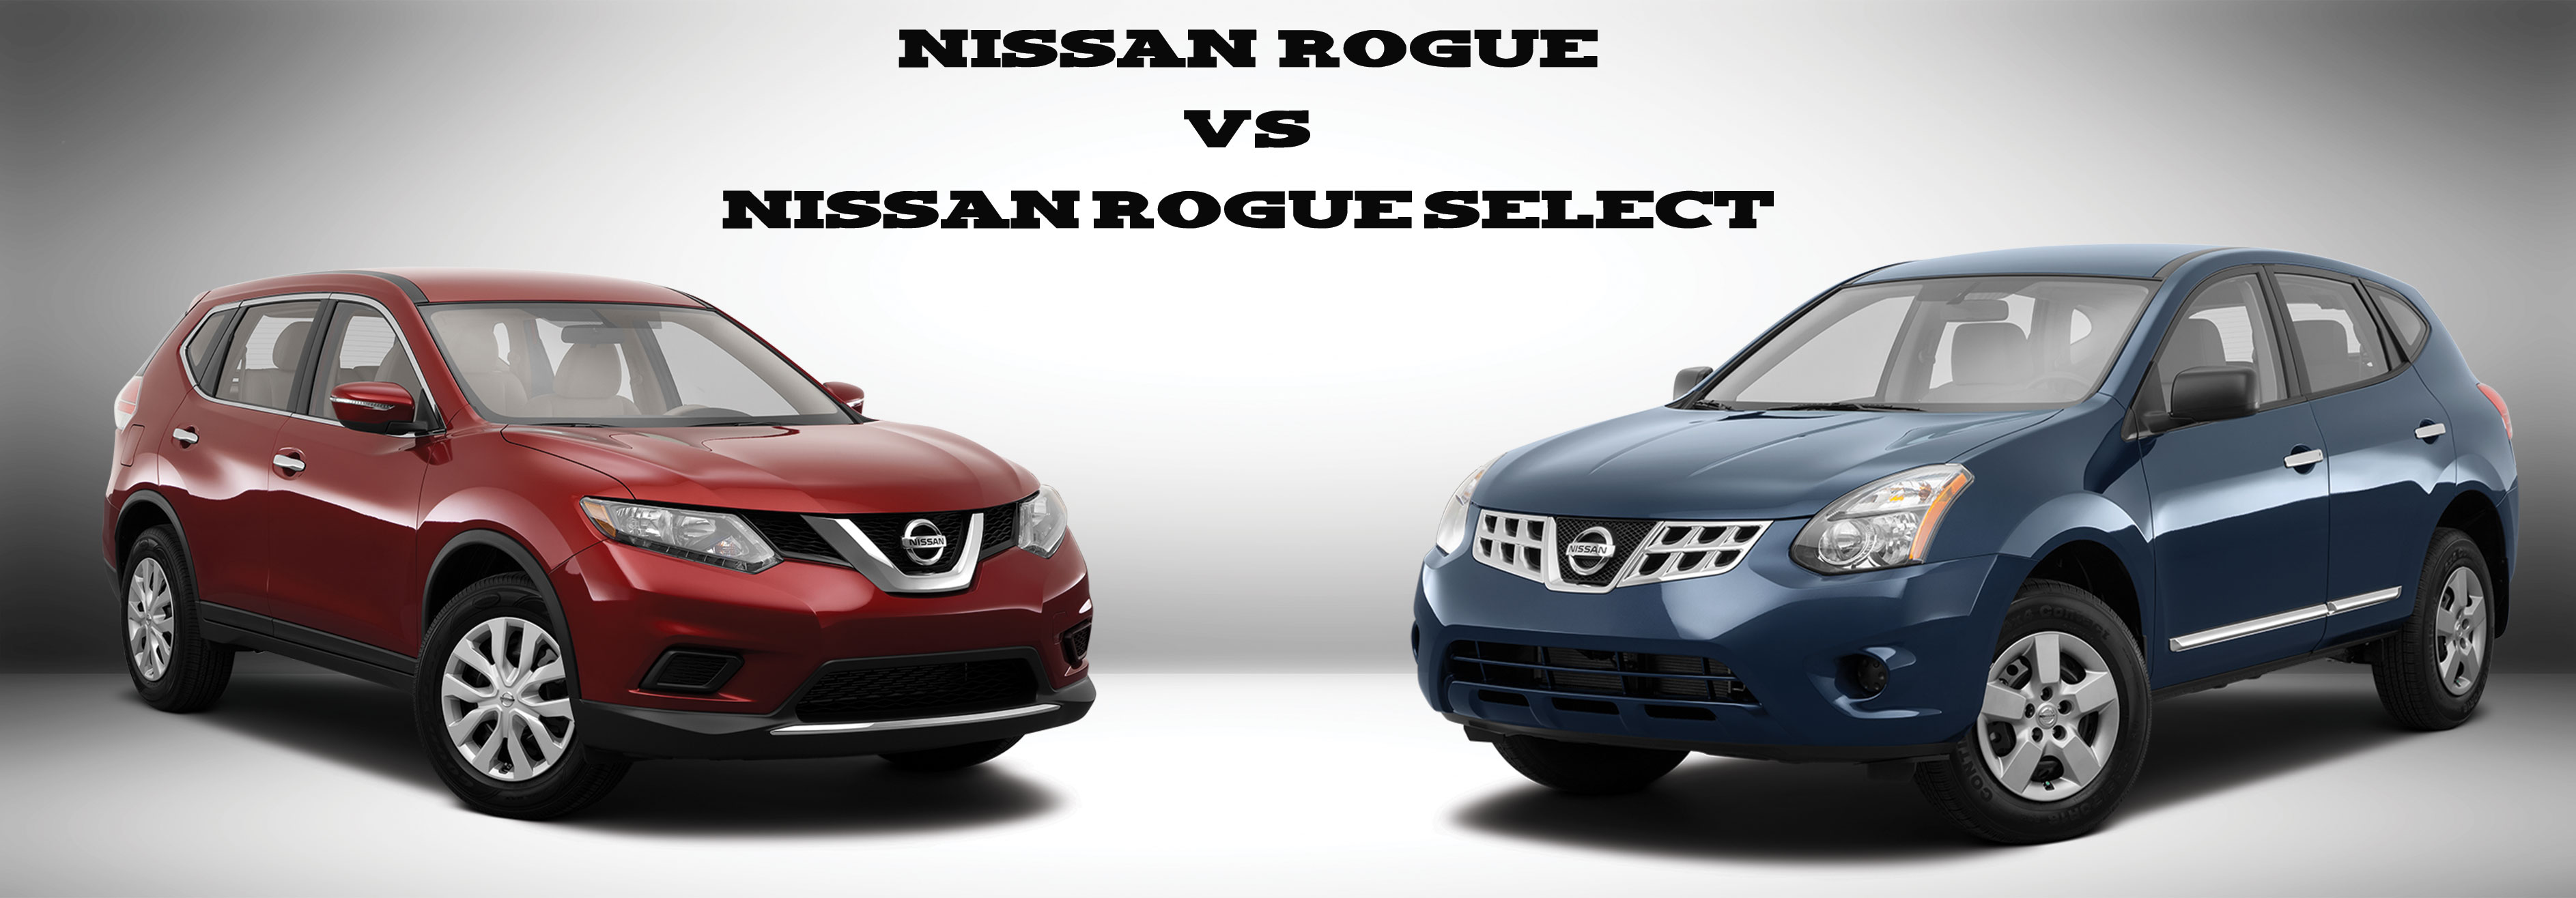 nissan rogue vs nissan rogue select what is the difference jack ingram nissan. Black Bedroom Furniture Sets. Home Design Ideas